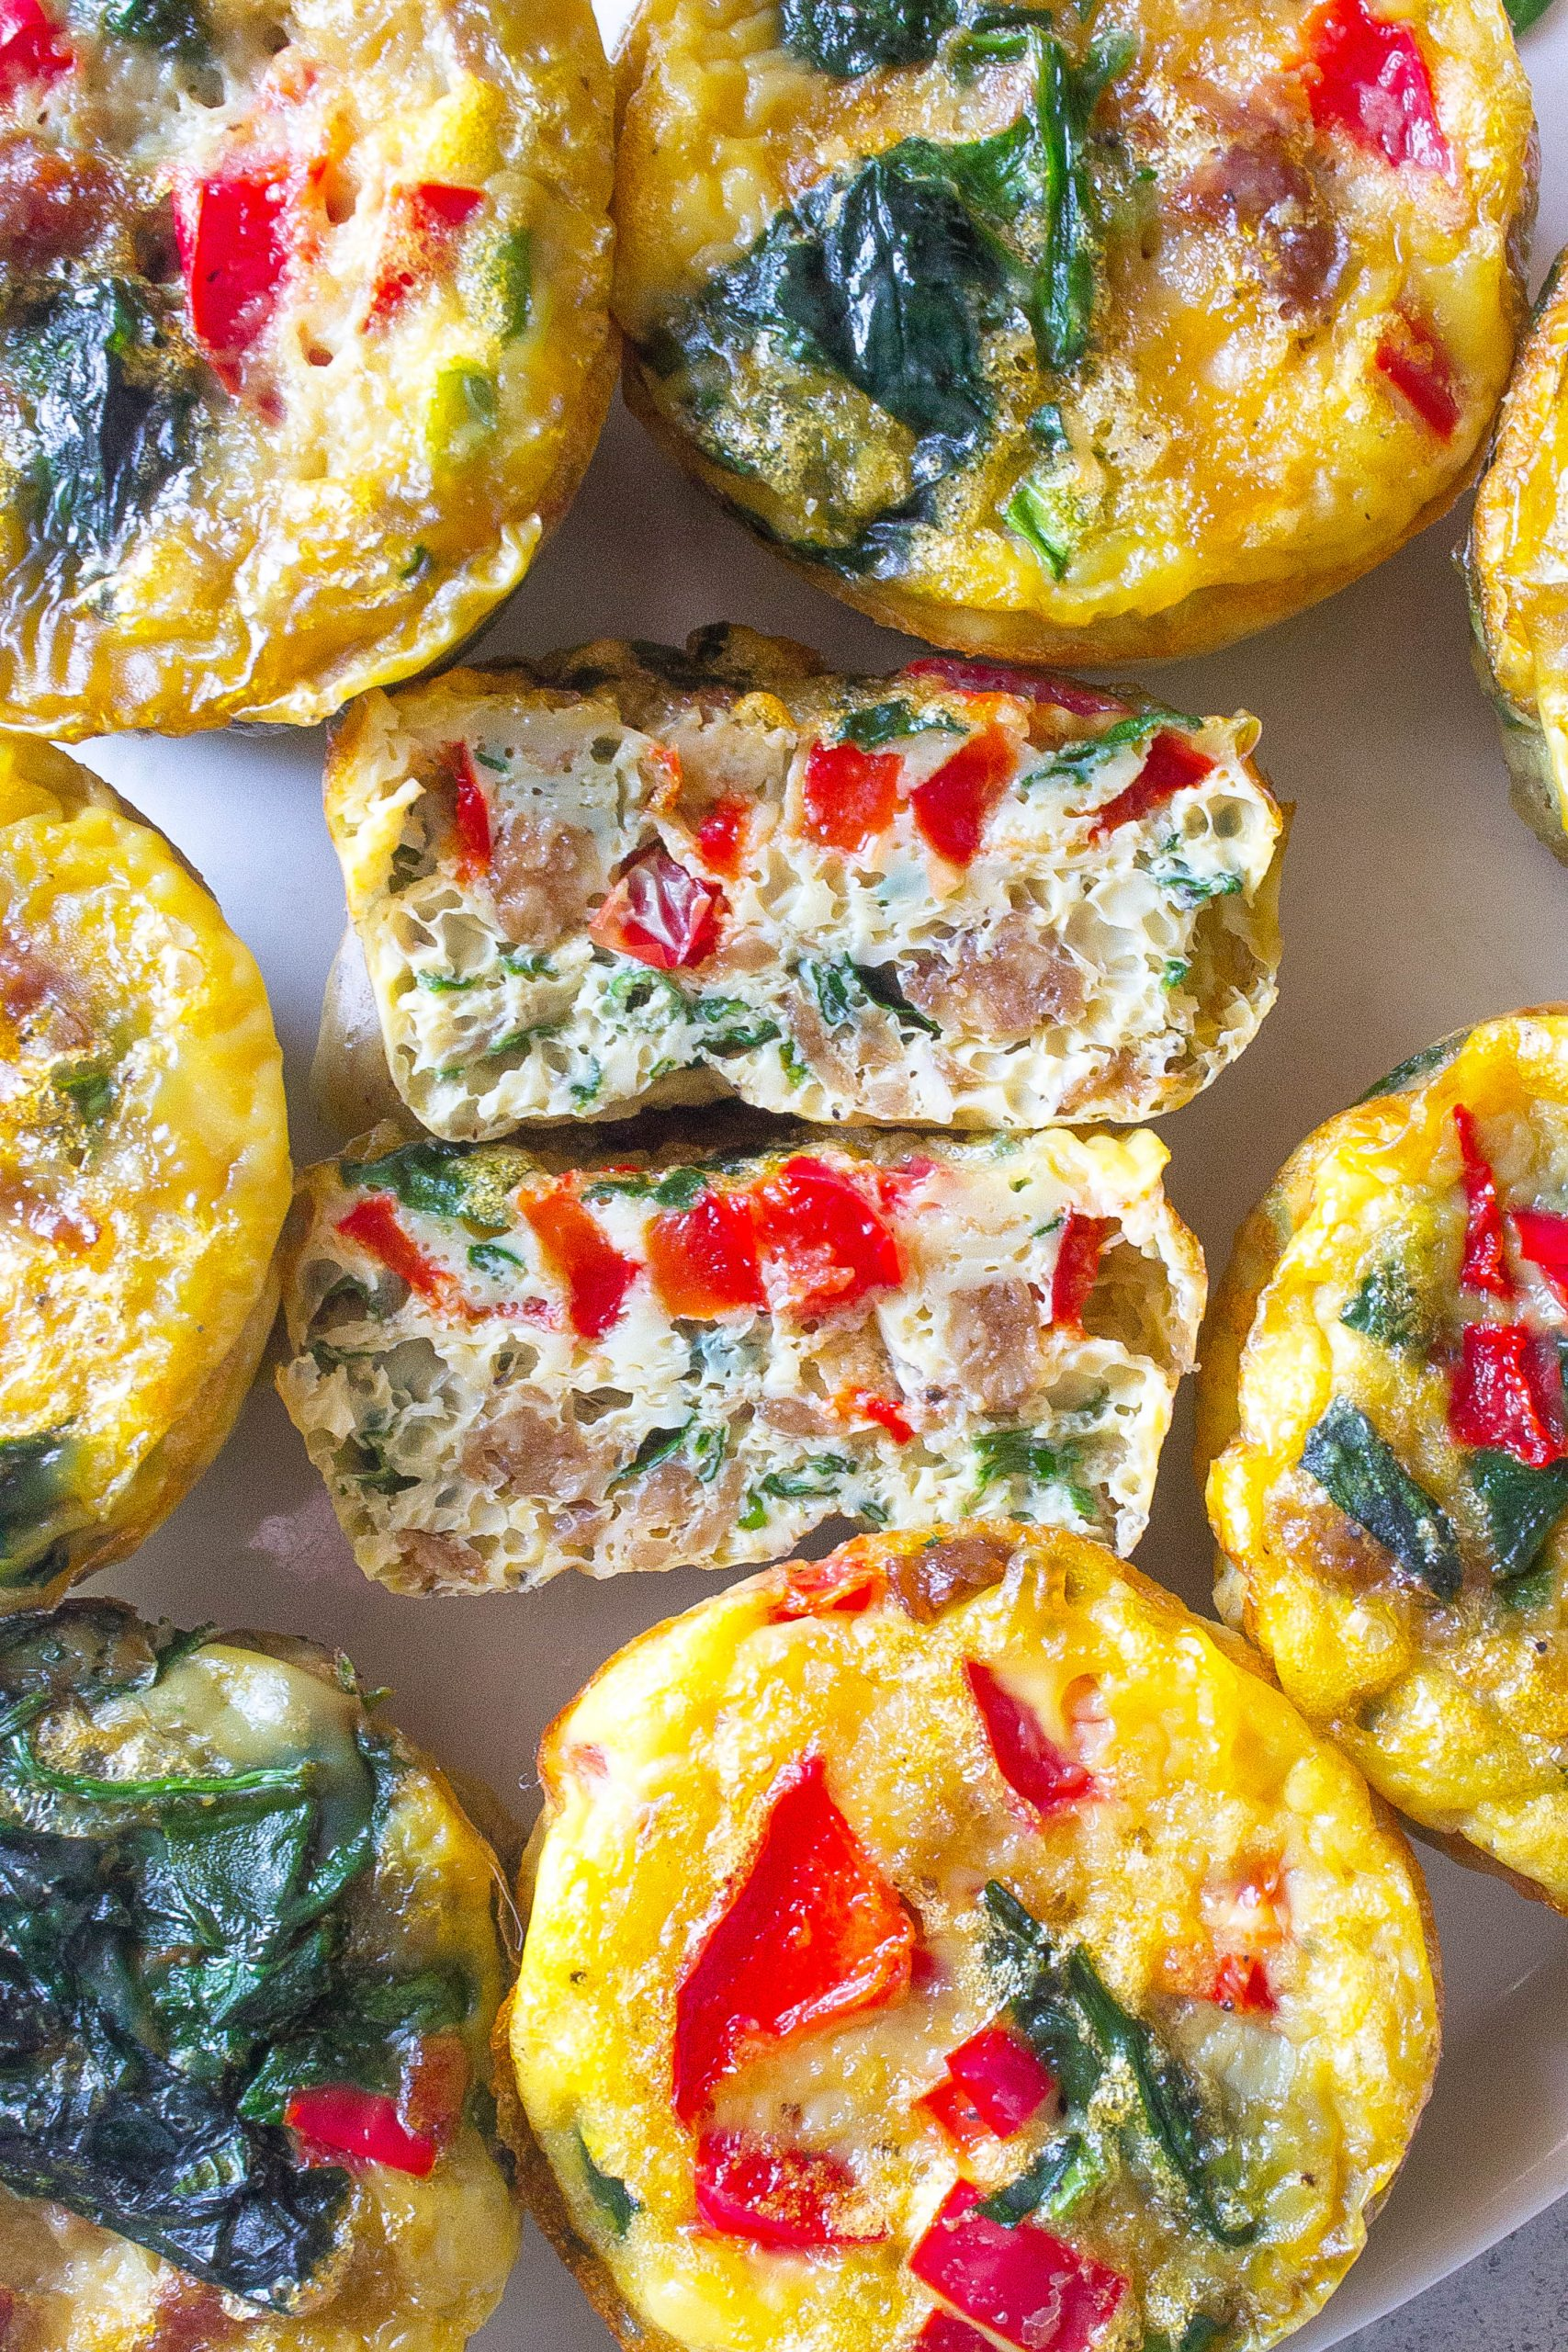 Meatless Veggie Omelette Bites perfectly cut